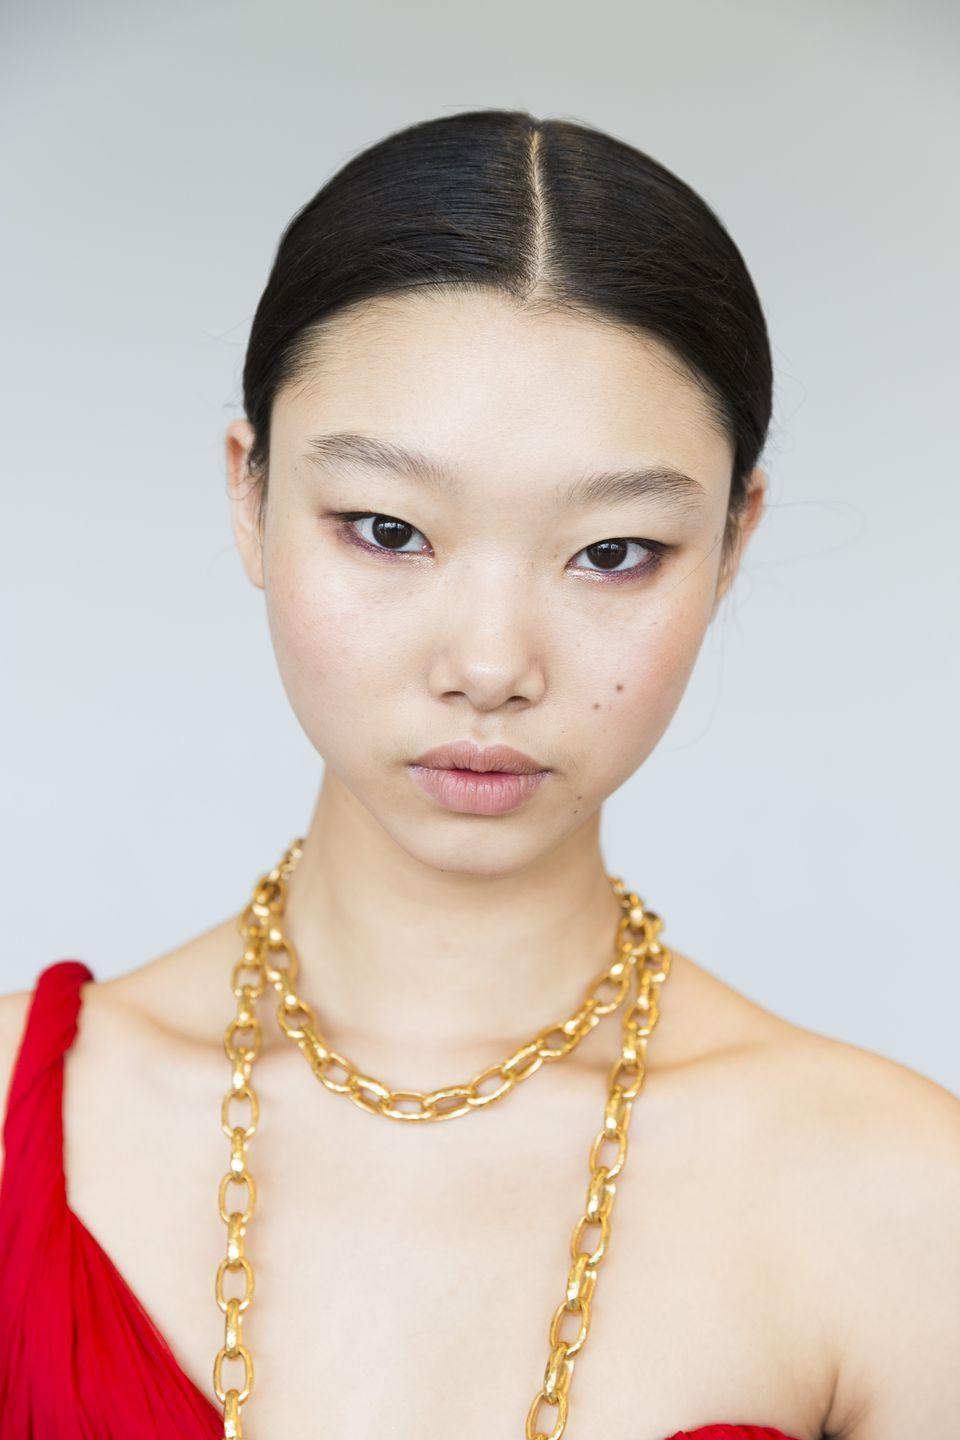 <p>Models walked the Oscar de la Renta runway wearing MAC Cosmetics Dazzleliner in Holiday Time, which doesn't even hit stores until next month. Makeup artists applied it precisely on the inner corner of the eye to add a touch of sparkle to the brown smoky eye.</p>